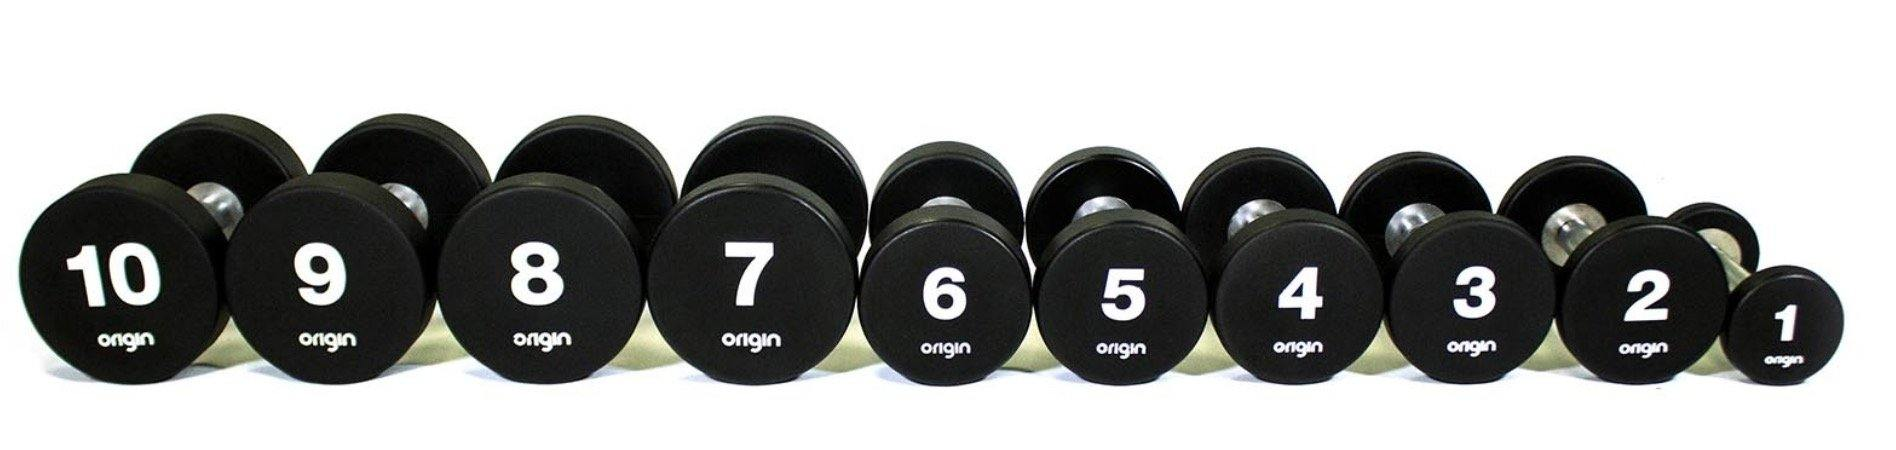 Origin UD2 Urethane Dumbbells Sets (up to 50kg)